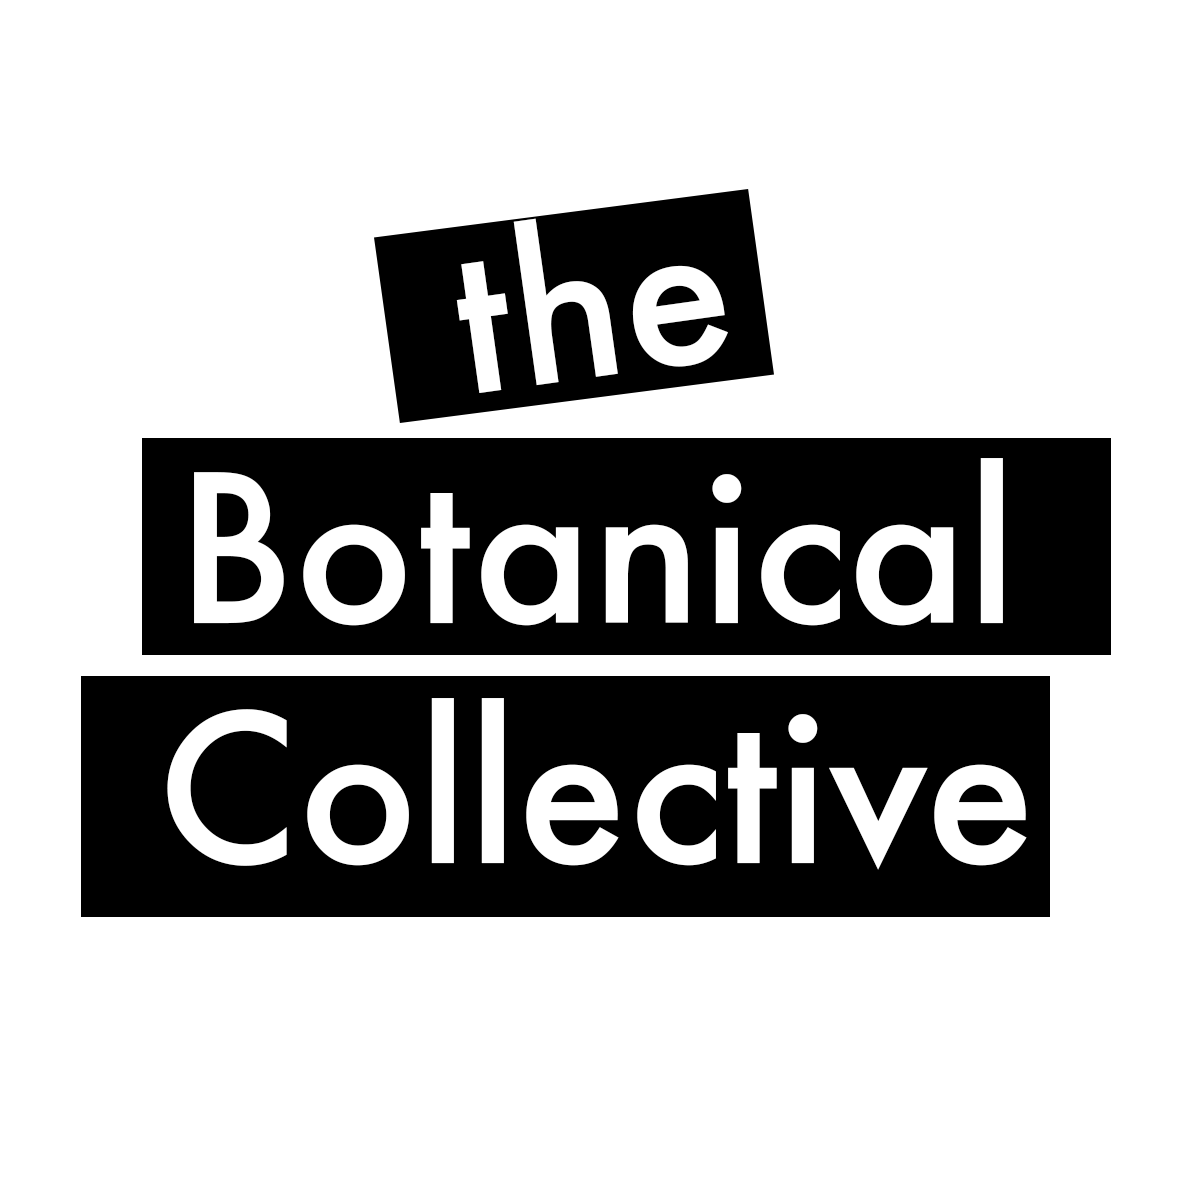 the botanical collective